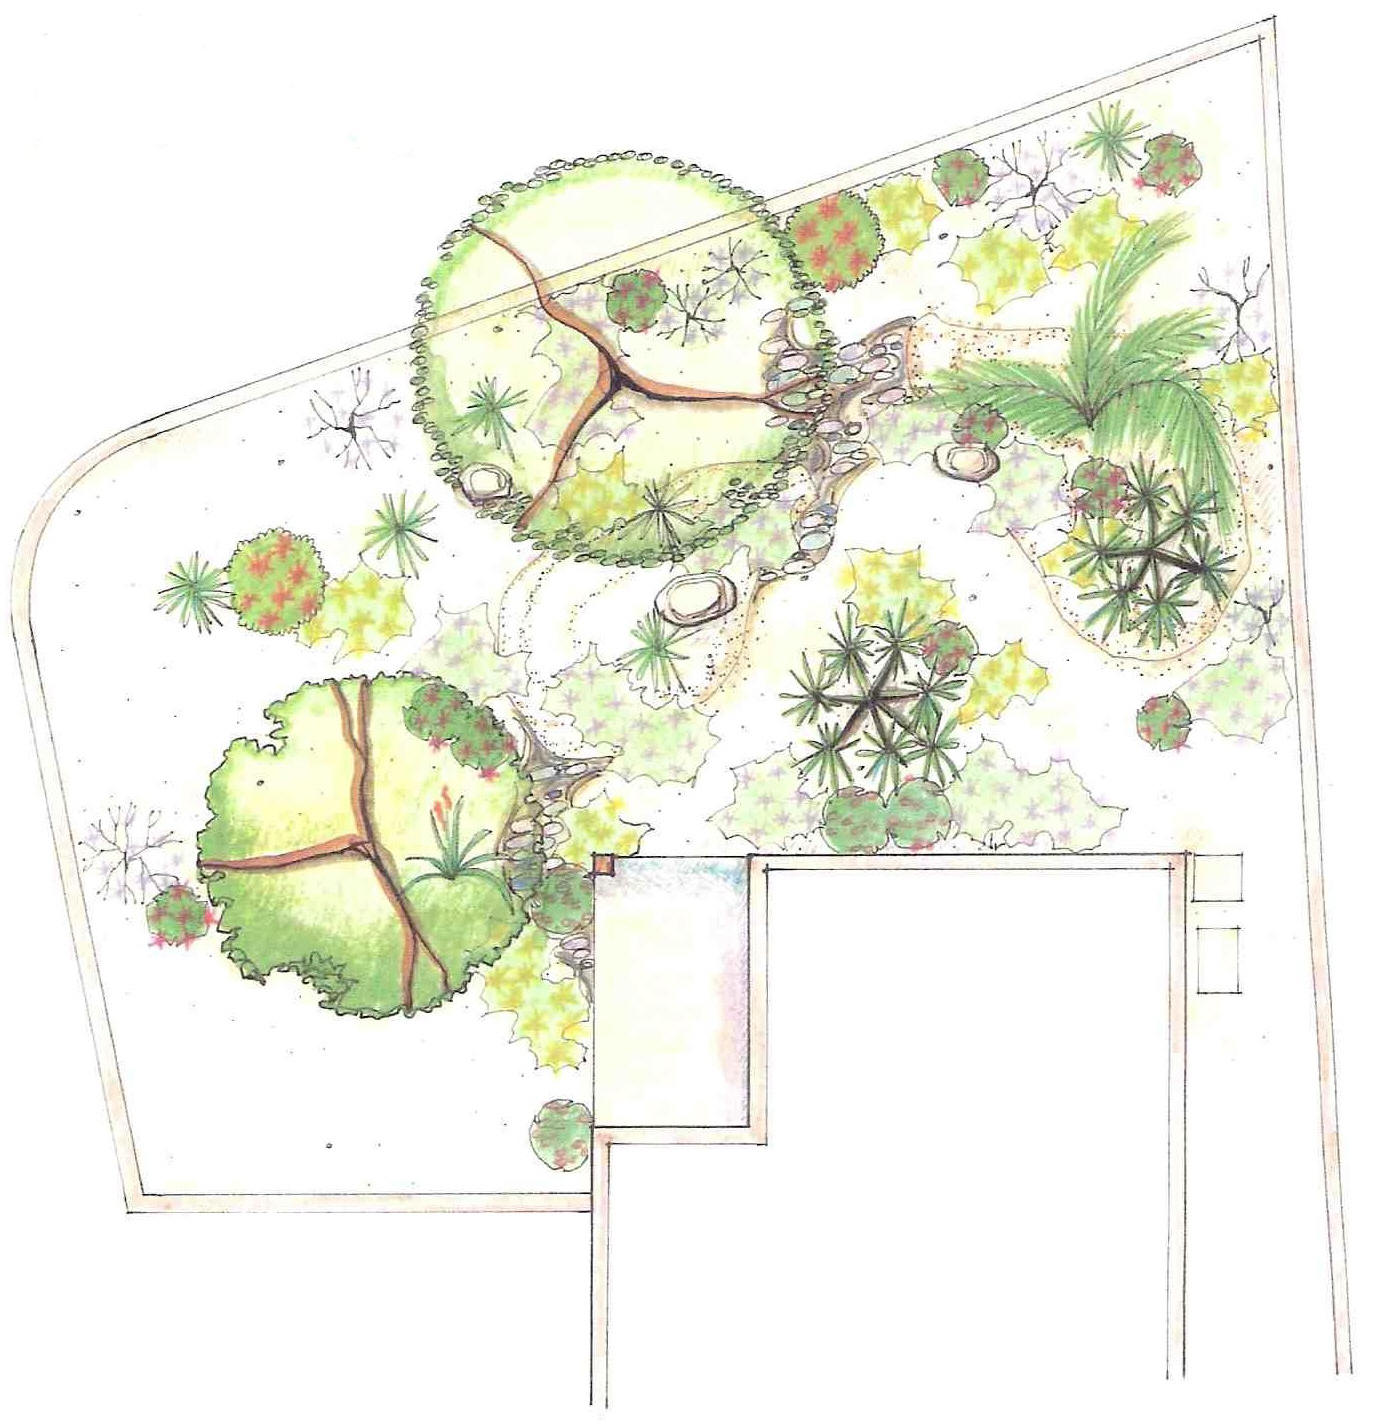 Art design landscape landscape plan drawing inspiration for Landscape plan drawing